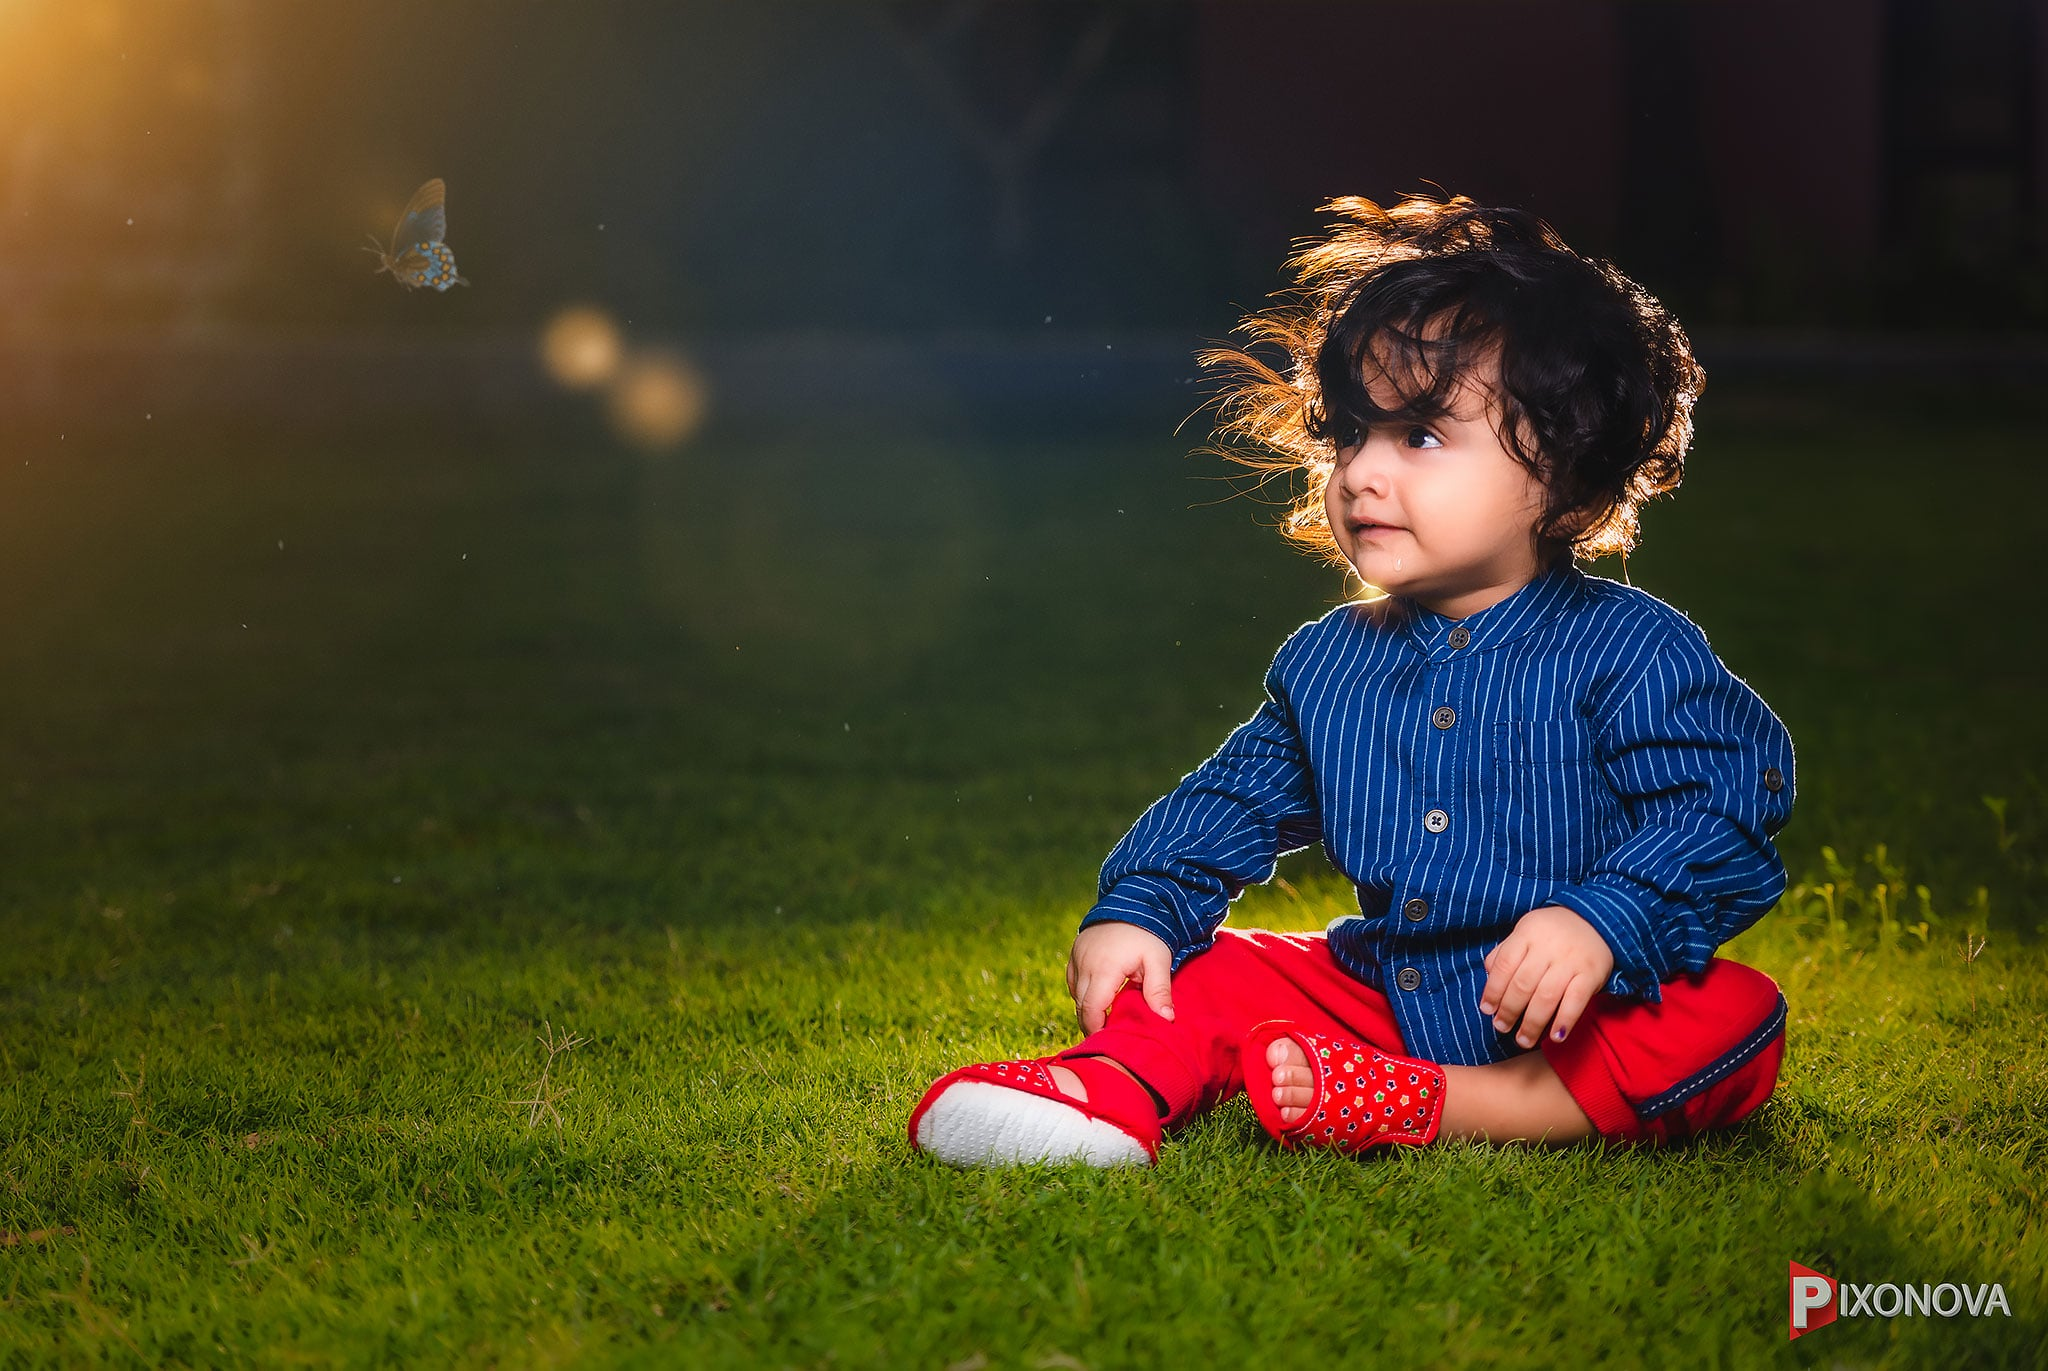 Buttrefly heart baby shot by Rishav chakraborty during a baby photoshoot